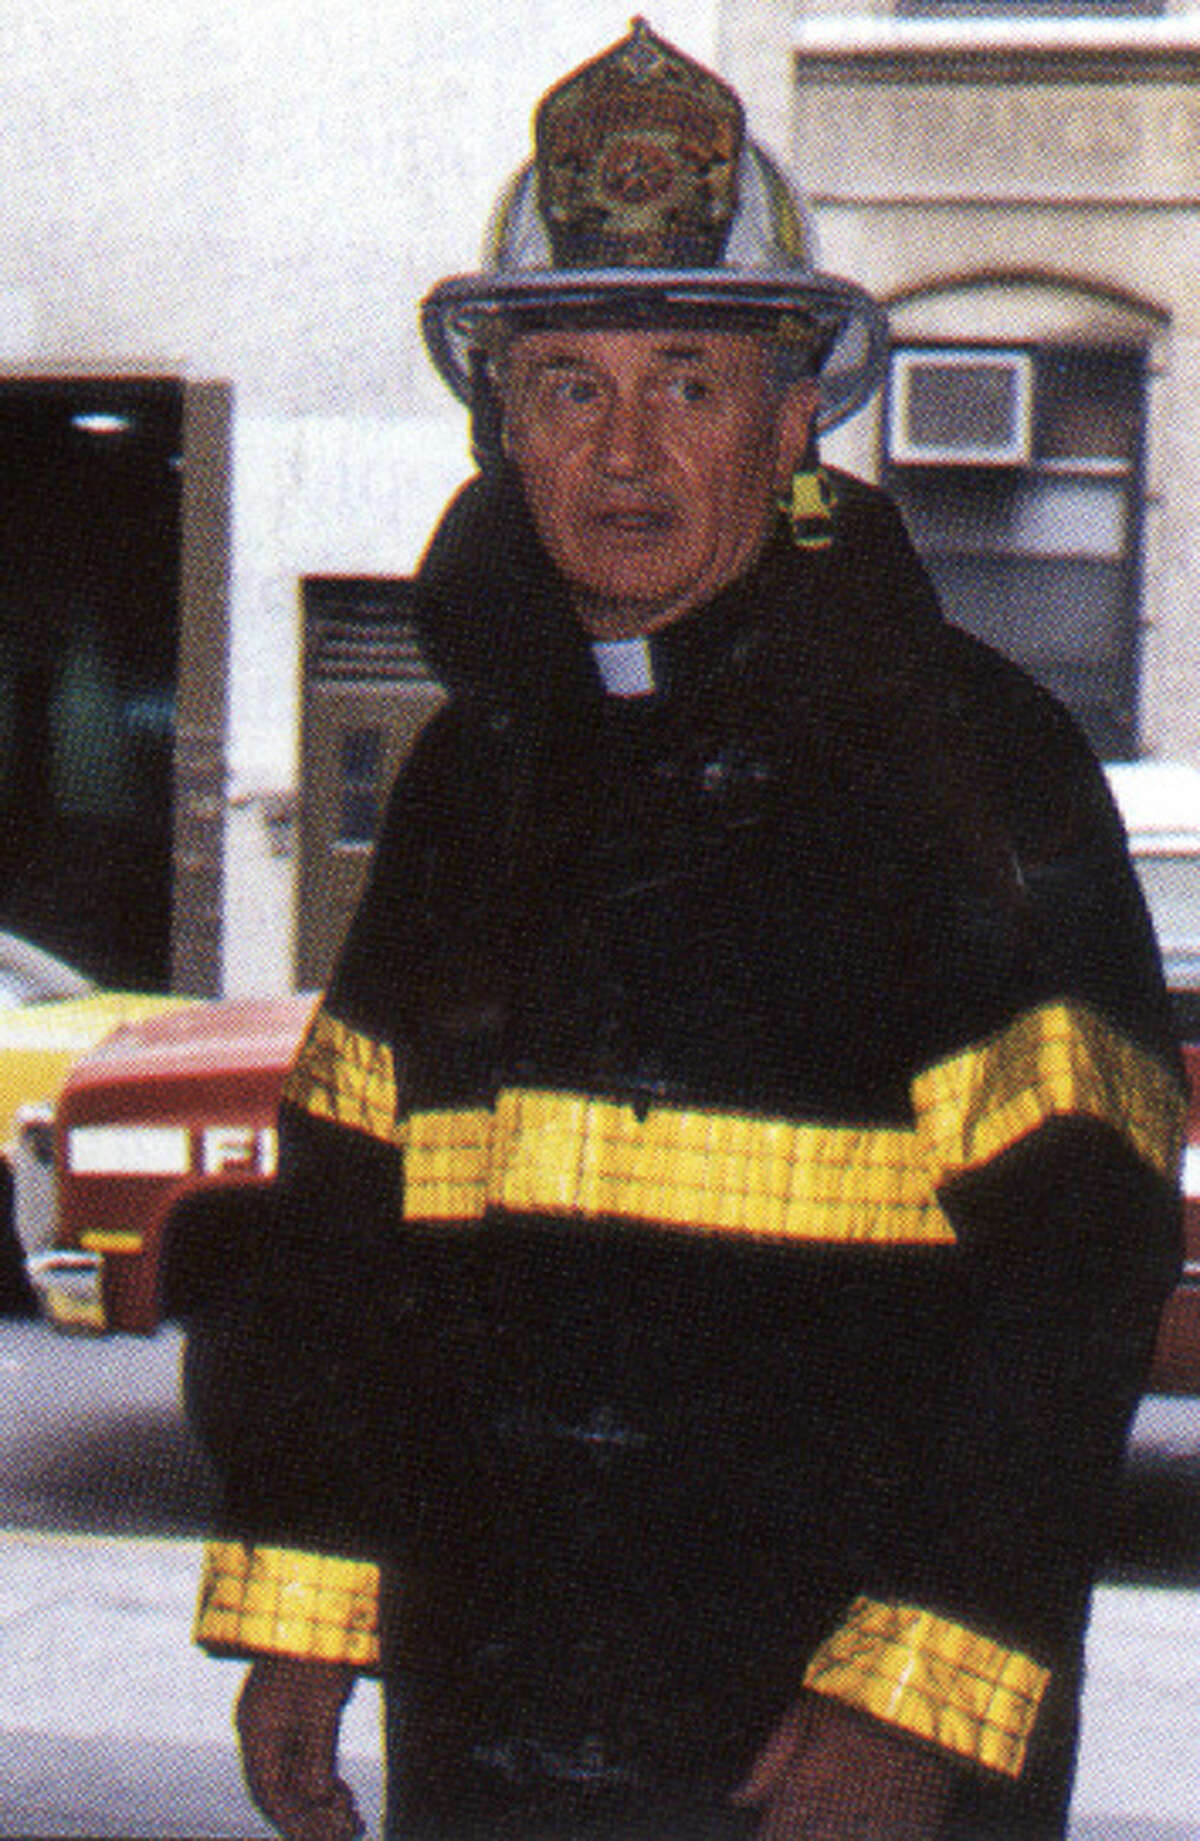 The Rev. Mychal Judge, a chaplain with the New York City Fire Department, died in the Sept. 11, 2001 collapse of the World Trade Center in New York City.